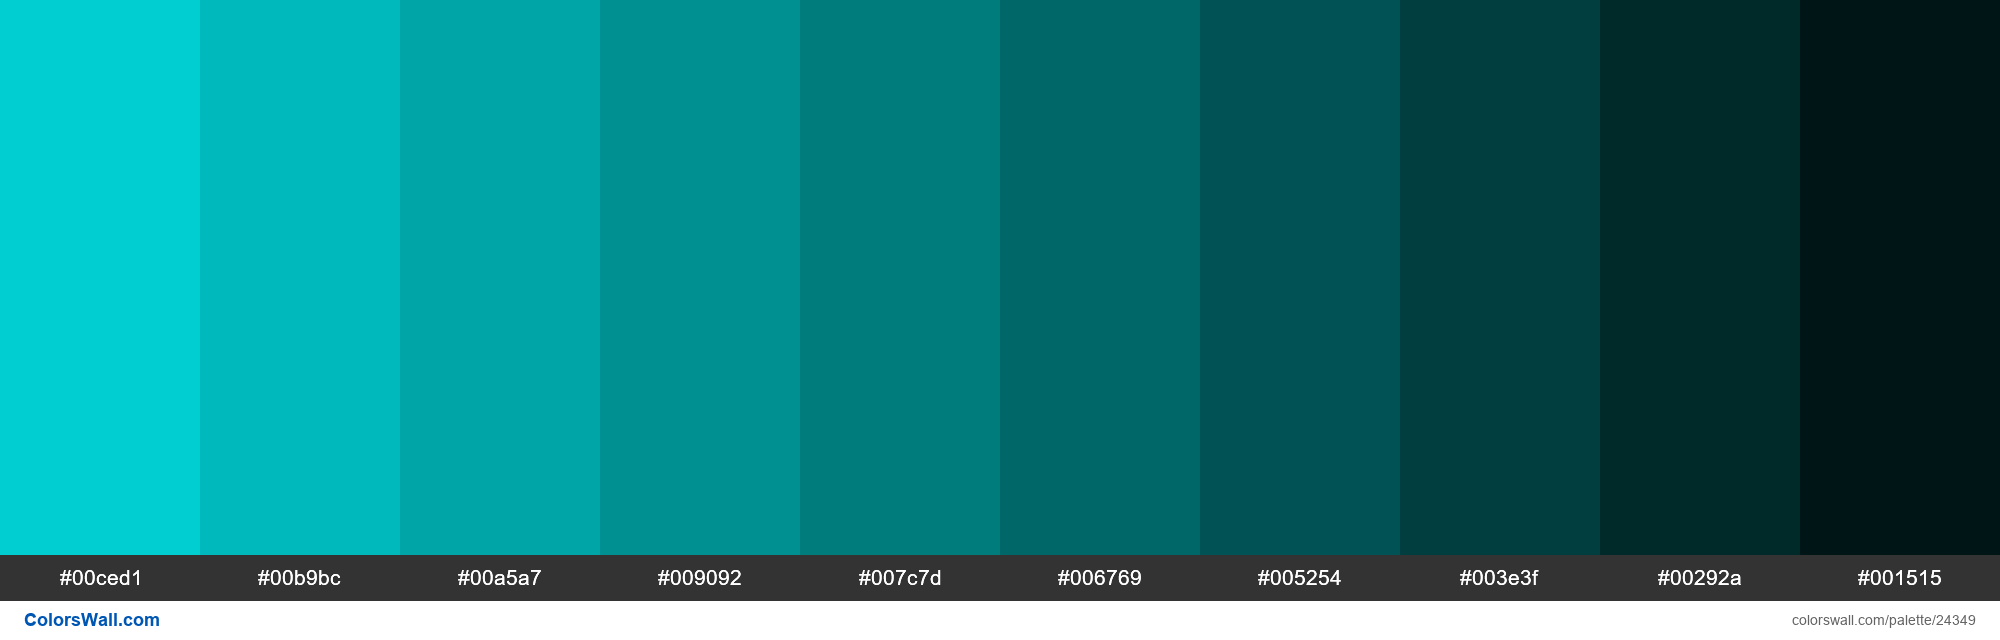 Shades of Dark Turquoise #00CED1 hex color - #24349